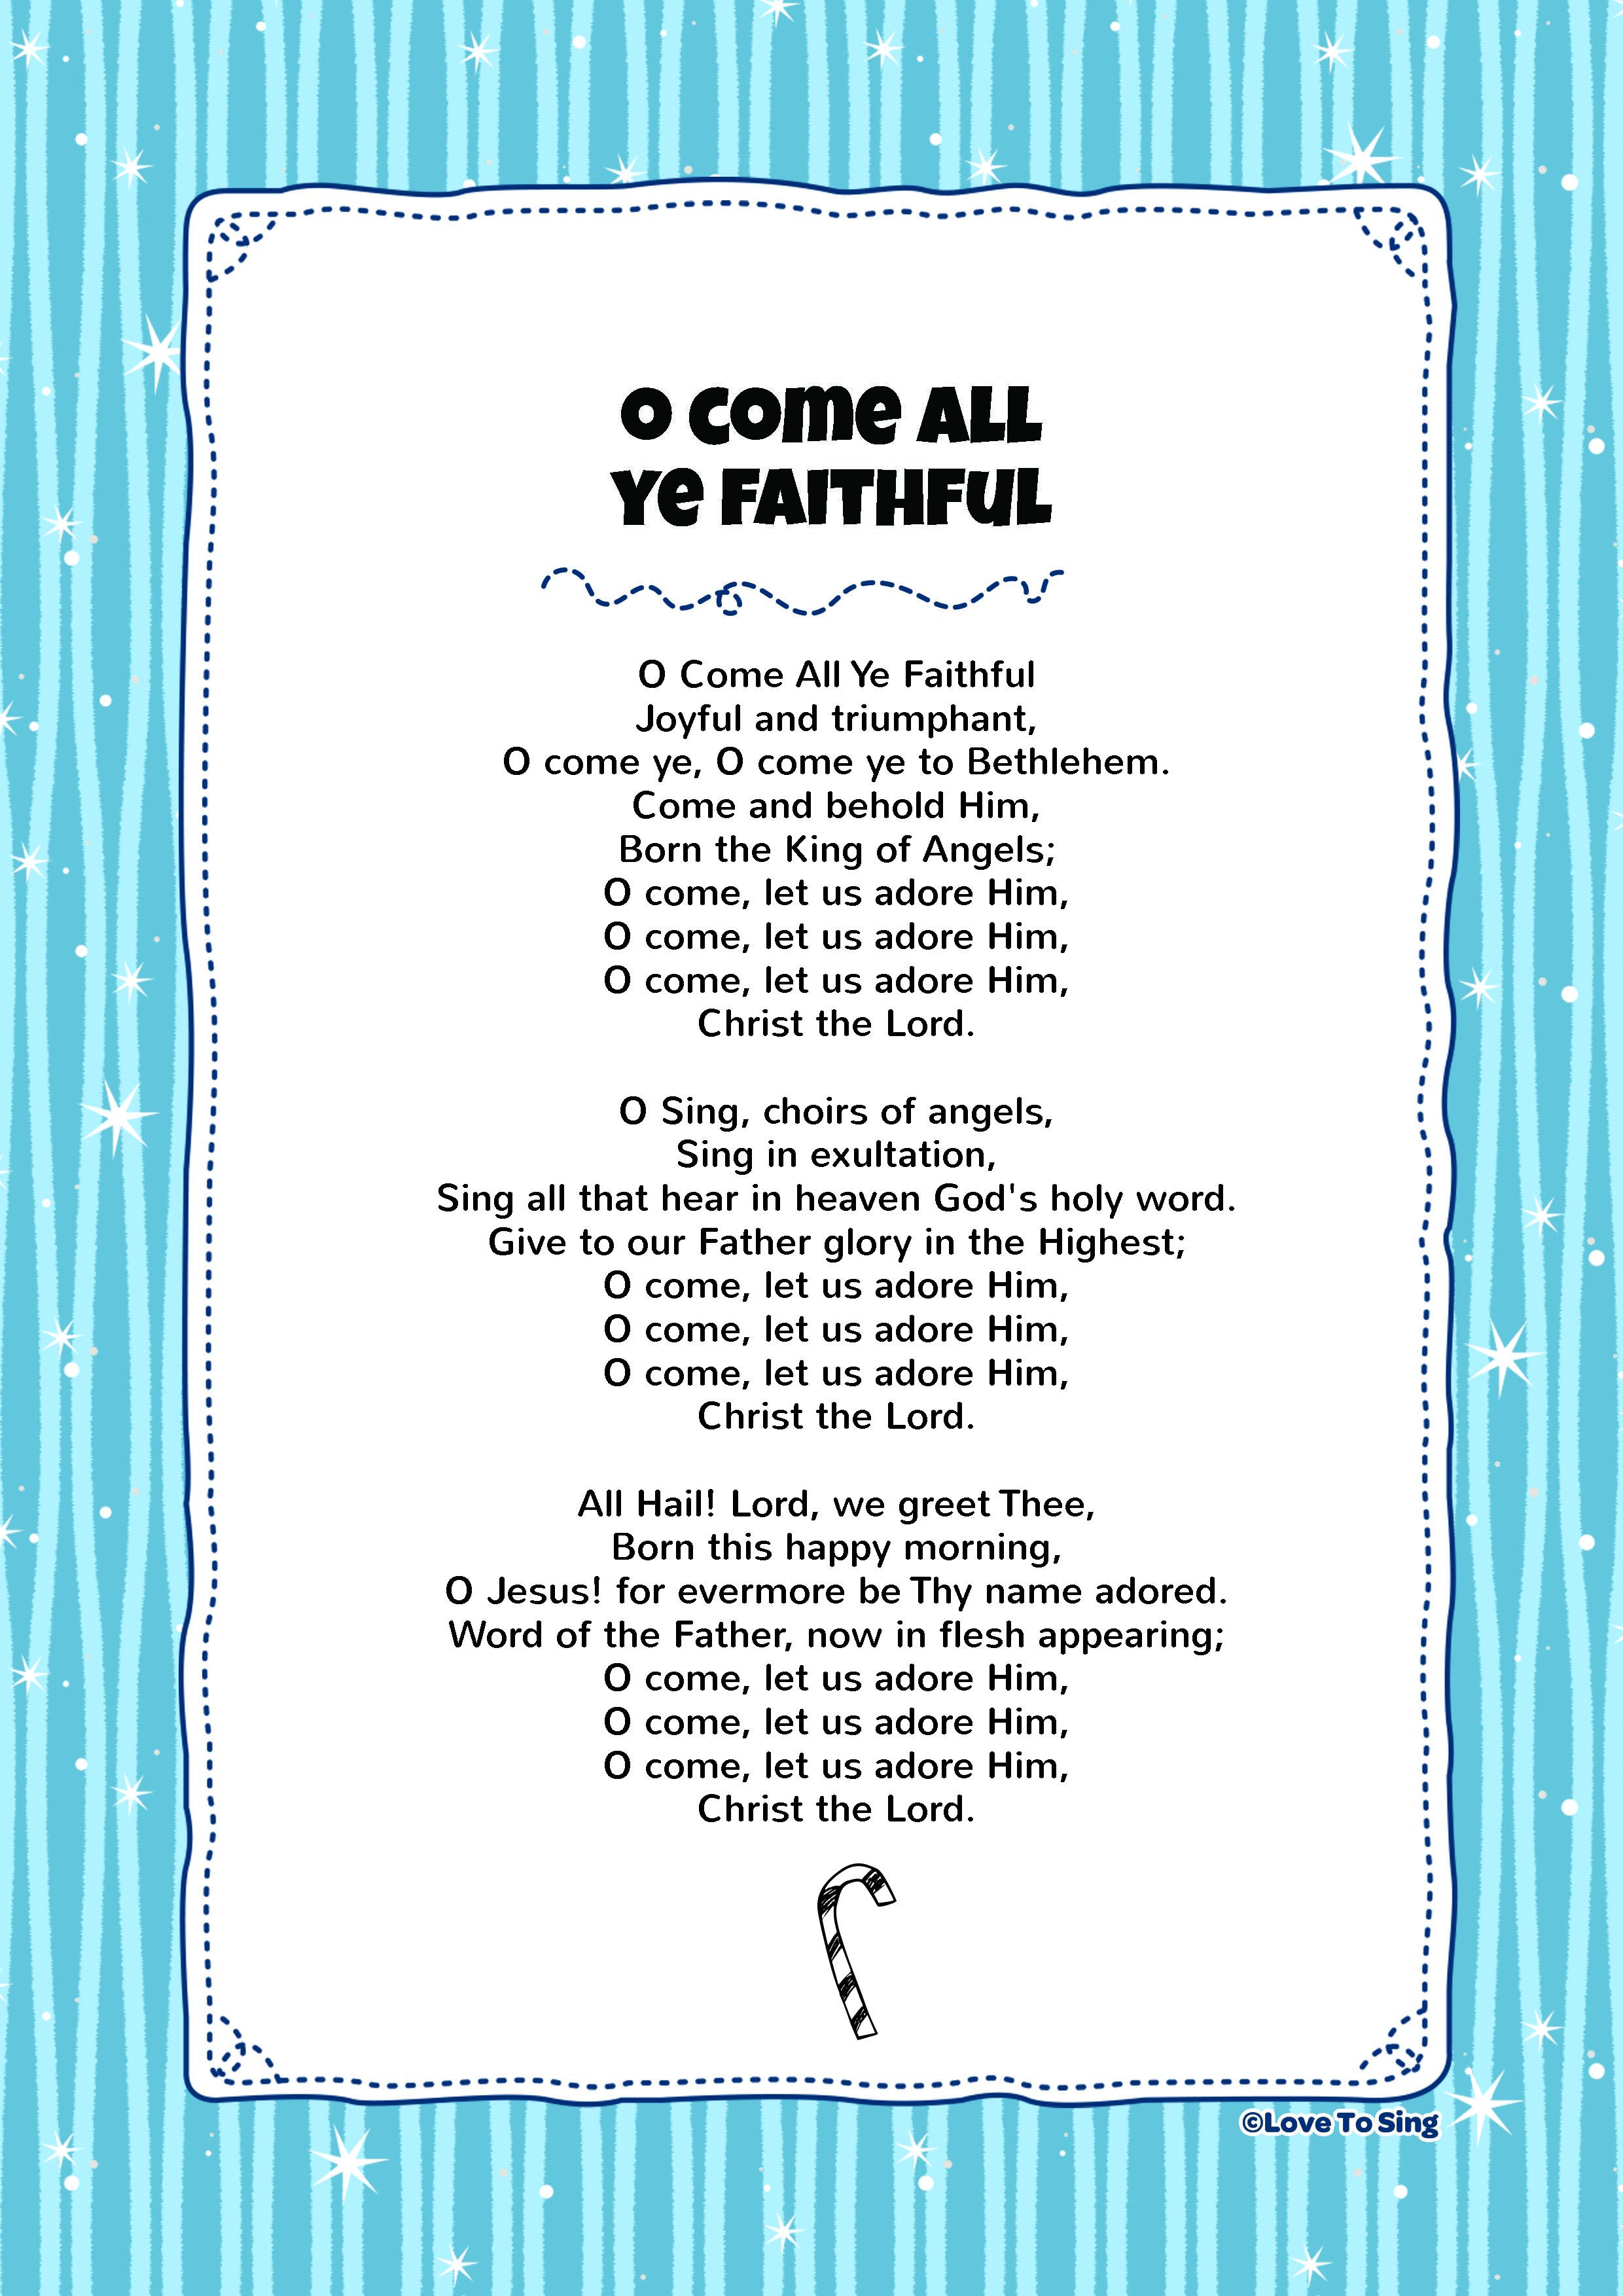 O Come All Ye Faithful | SS Songs | Pinterest | Christmas, Songs and ...